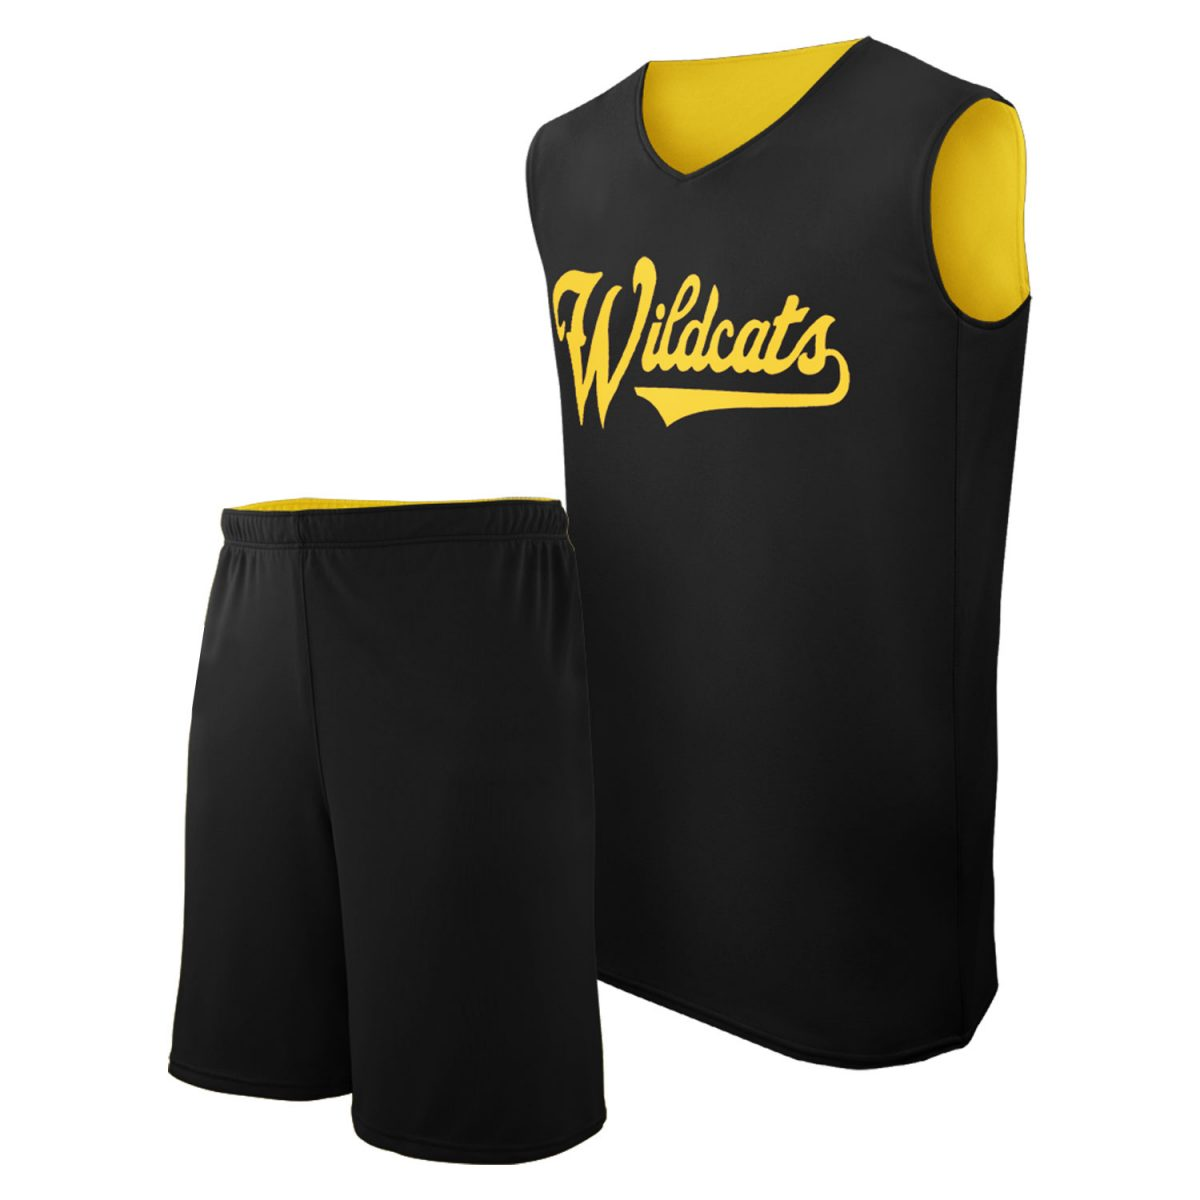 Boys Basketball Uniforms Manufacturers in Brazil